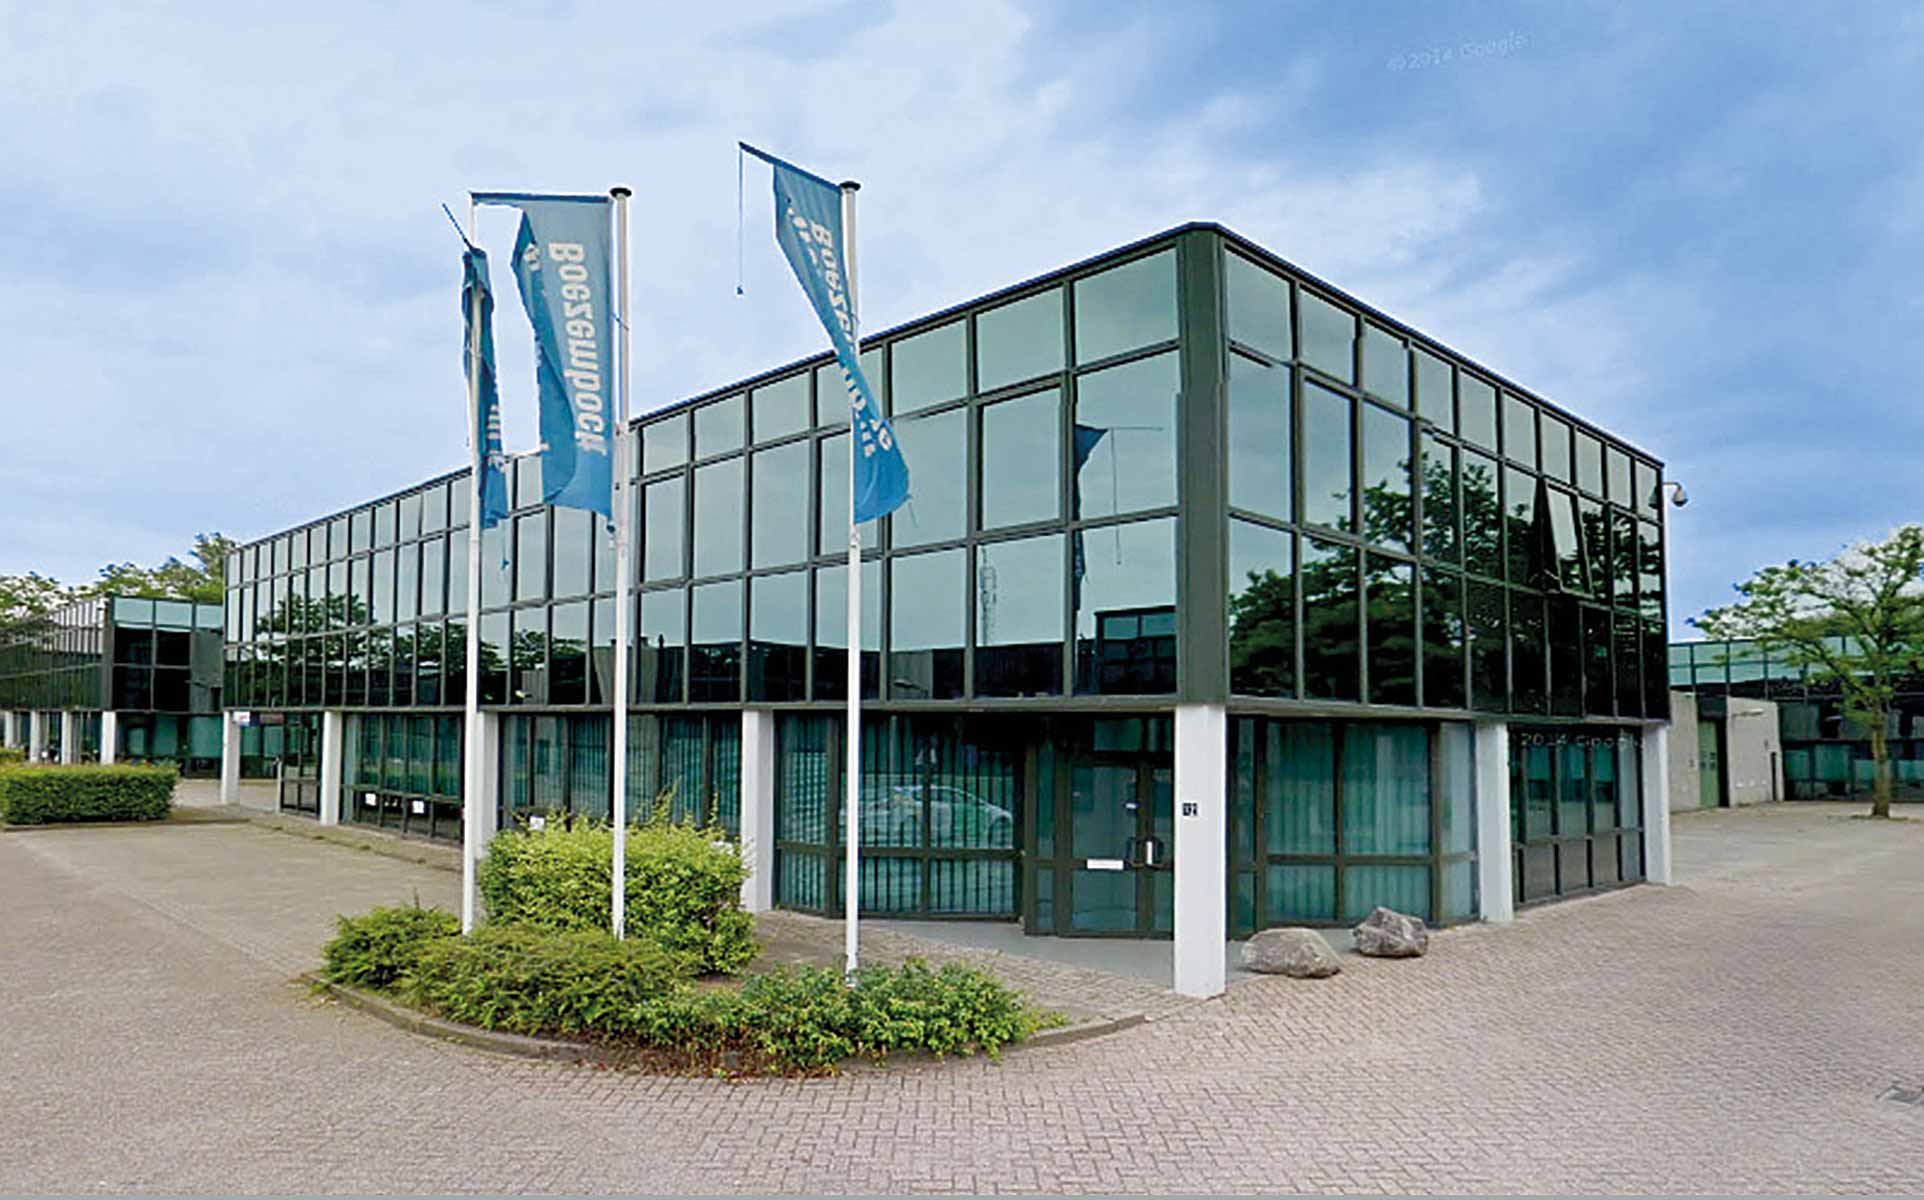 Henley Investments - A European and USA Commercial Real Estate Office and Industrial Asset in Rotterdam